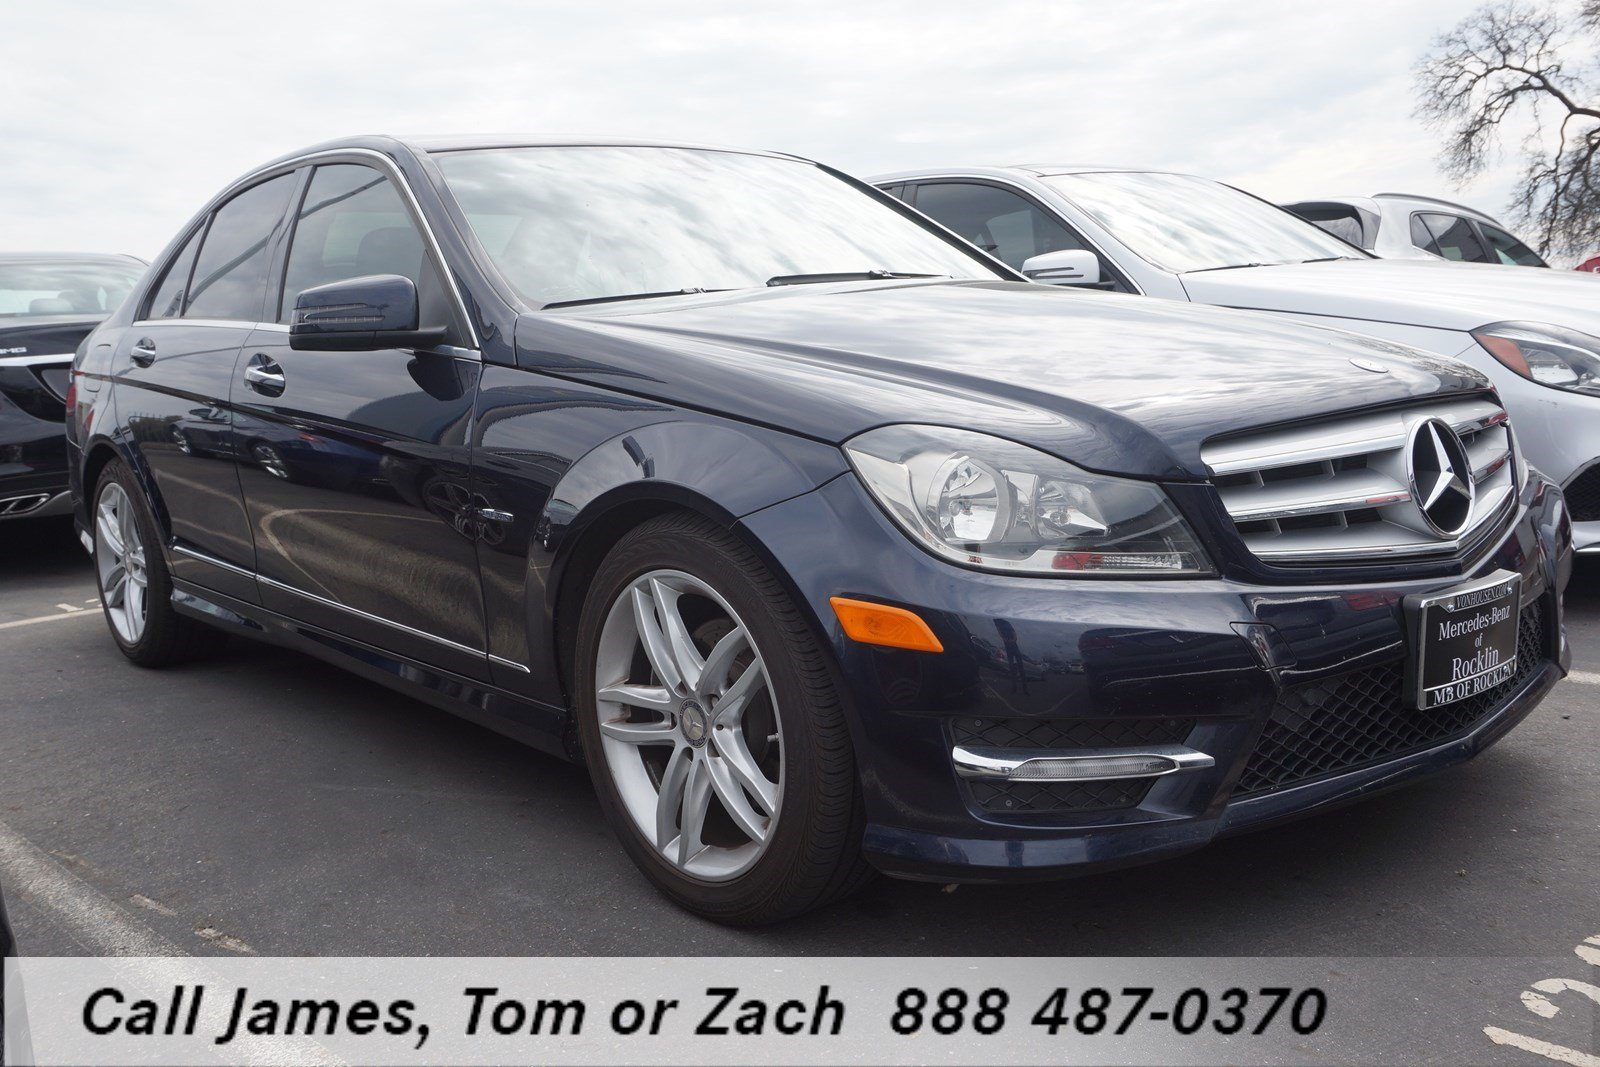 Pre owned 2012 mercedes benz c class c250w 4dr car in for Mercedes benz c class pre owned